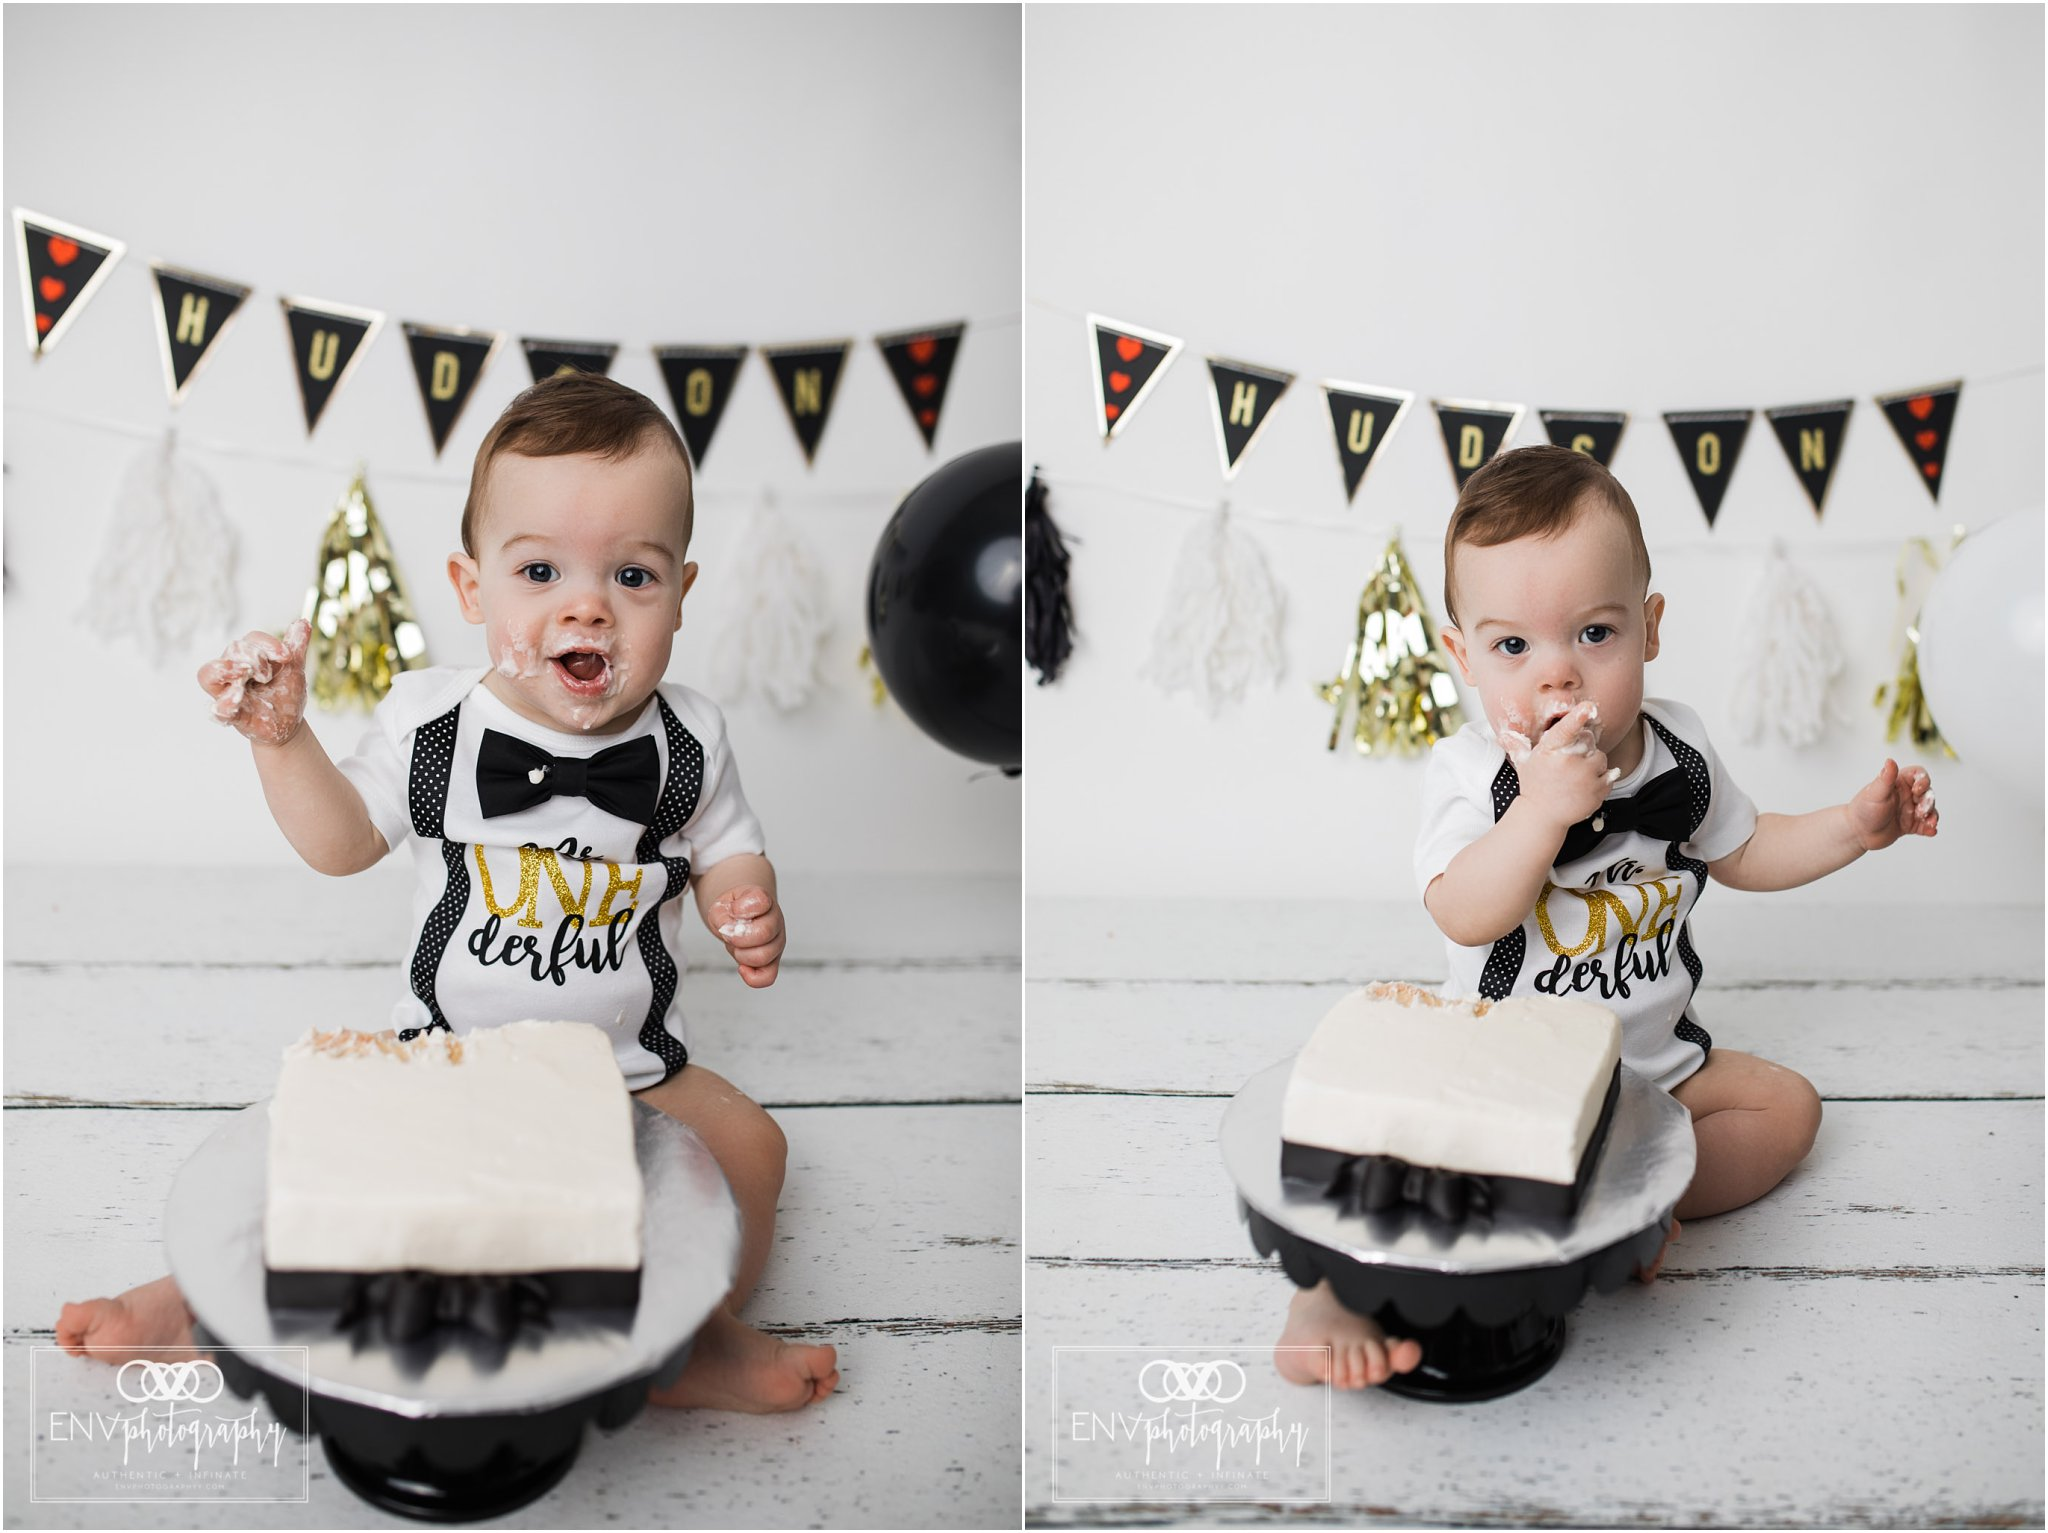 Mount Vernon Columbus Ohio Family Photographer First Birthday Cake Smash (24).jpg